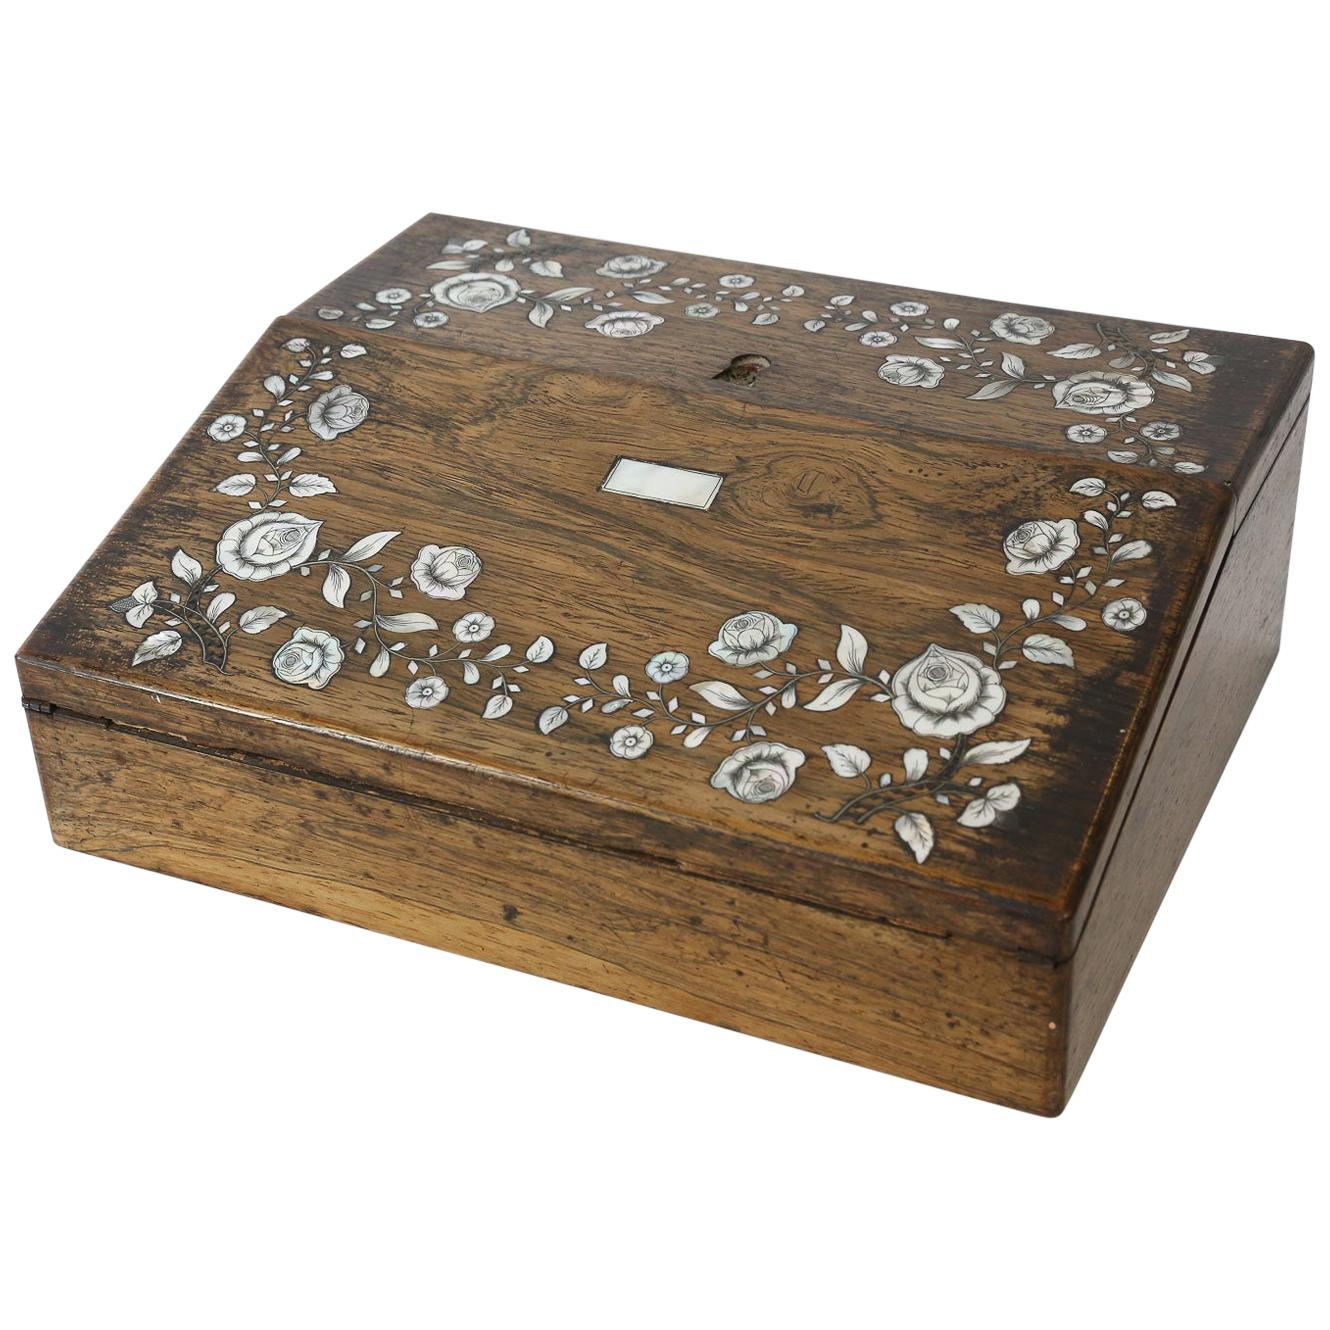 Antique Writing Box with Mother of Pearl Inlay